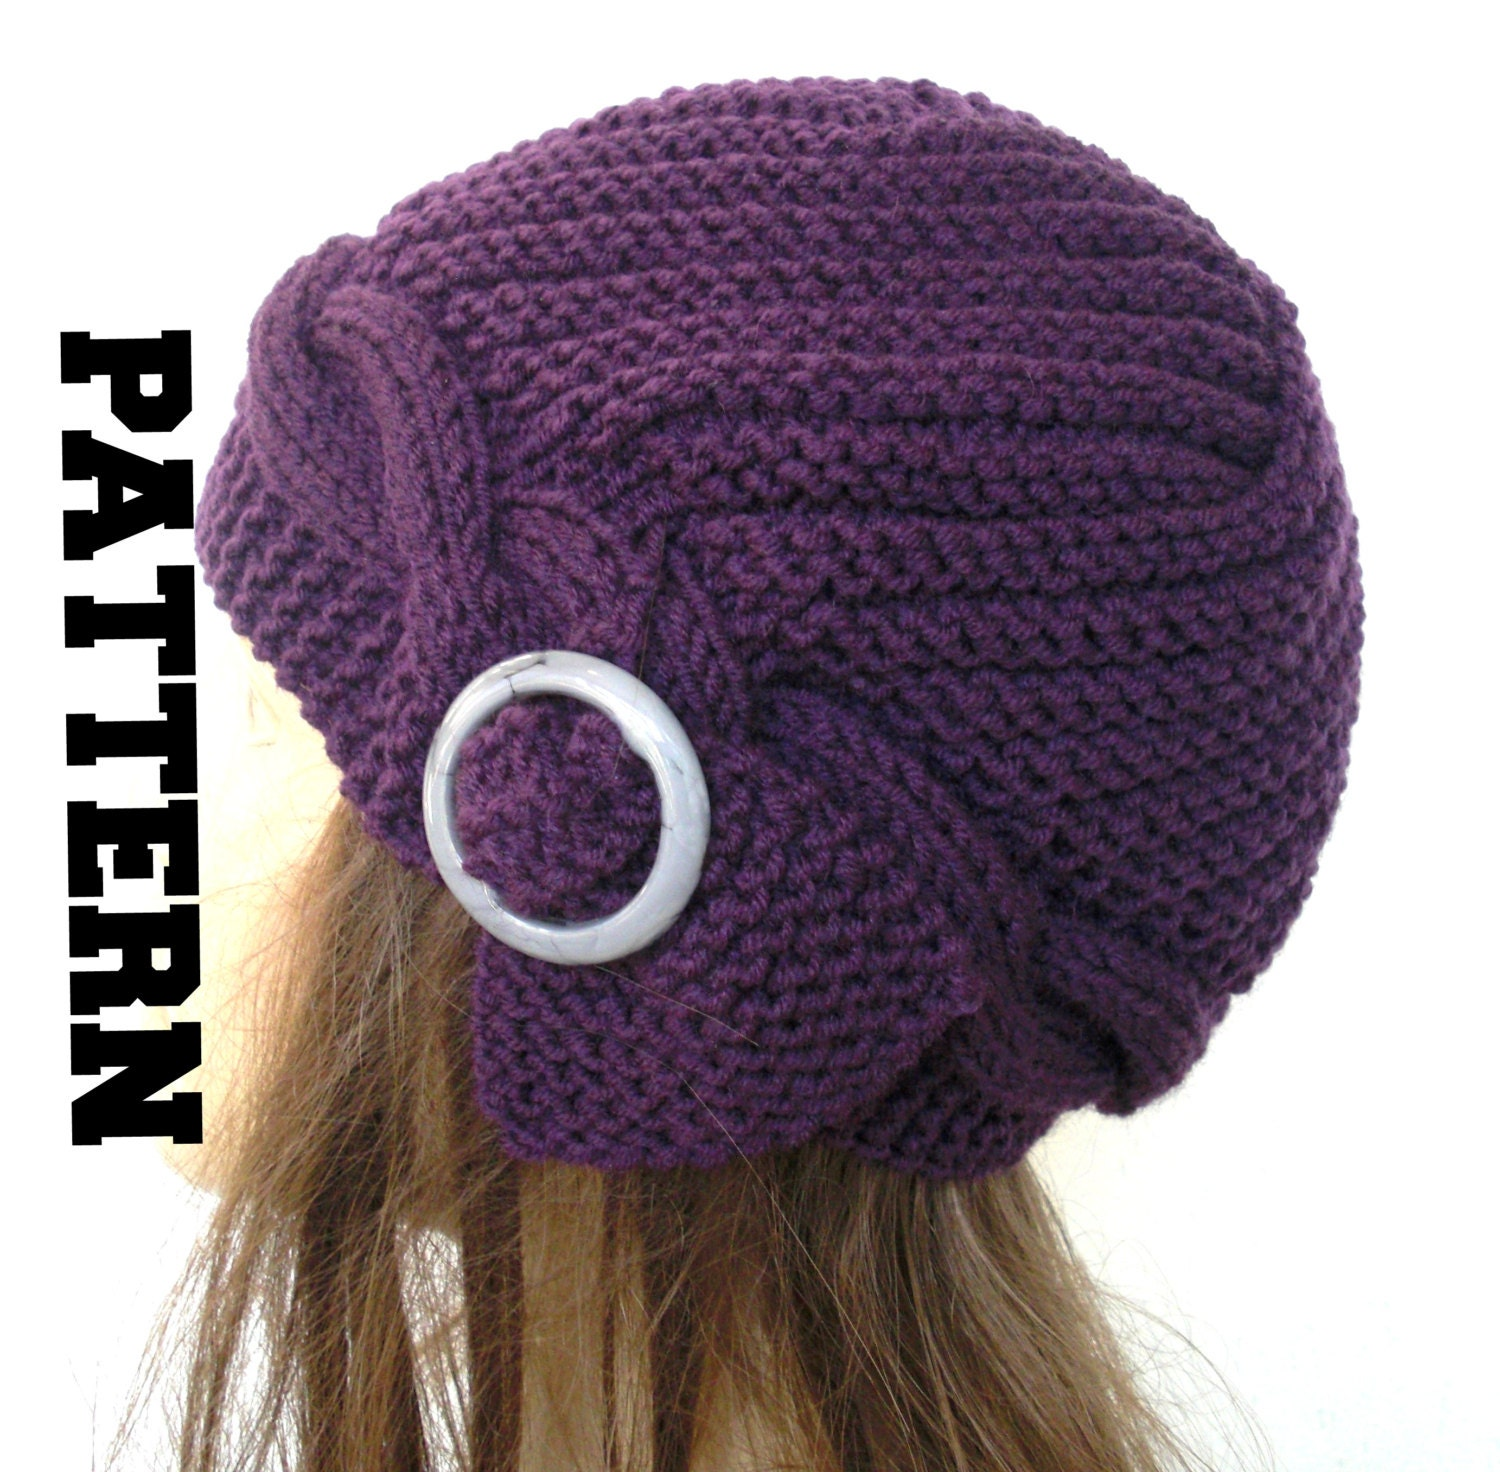 Cable knit hat pattern instant download knit hat pattern digital cable knit hat pattern instant download knit hat pattern digital hat knitting pattern pdf cloche hat knit pattern bankloansurffo Gallery